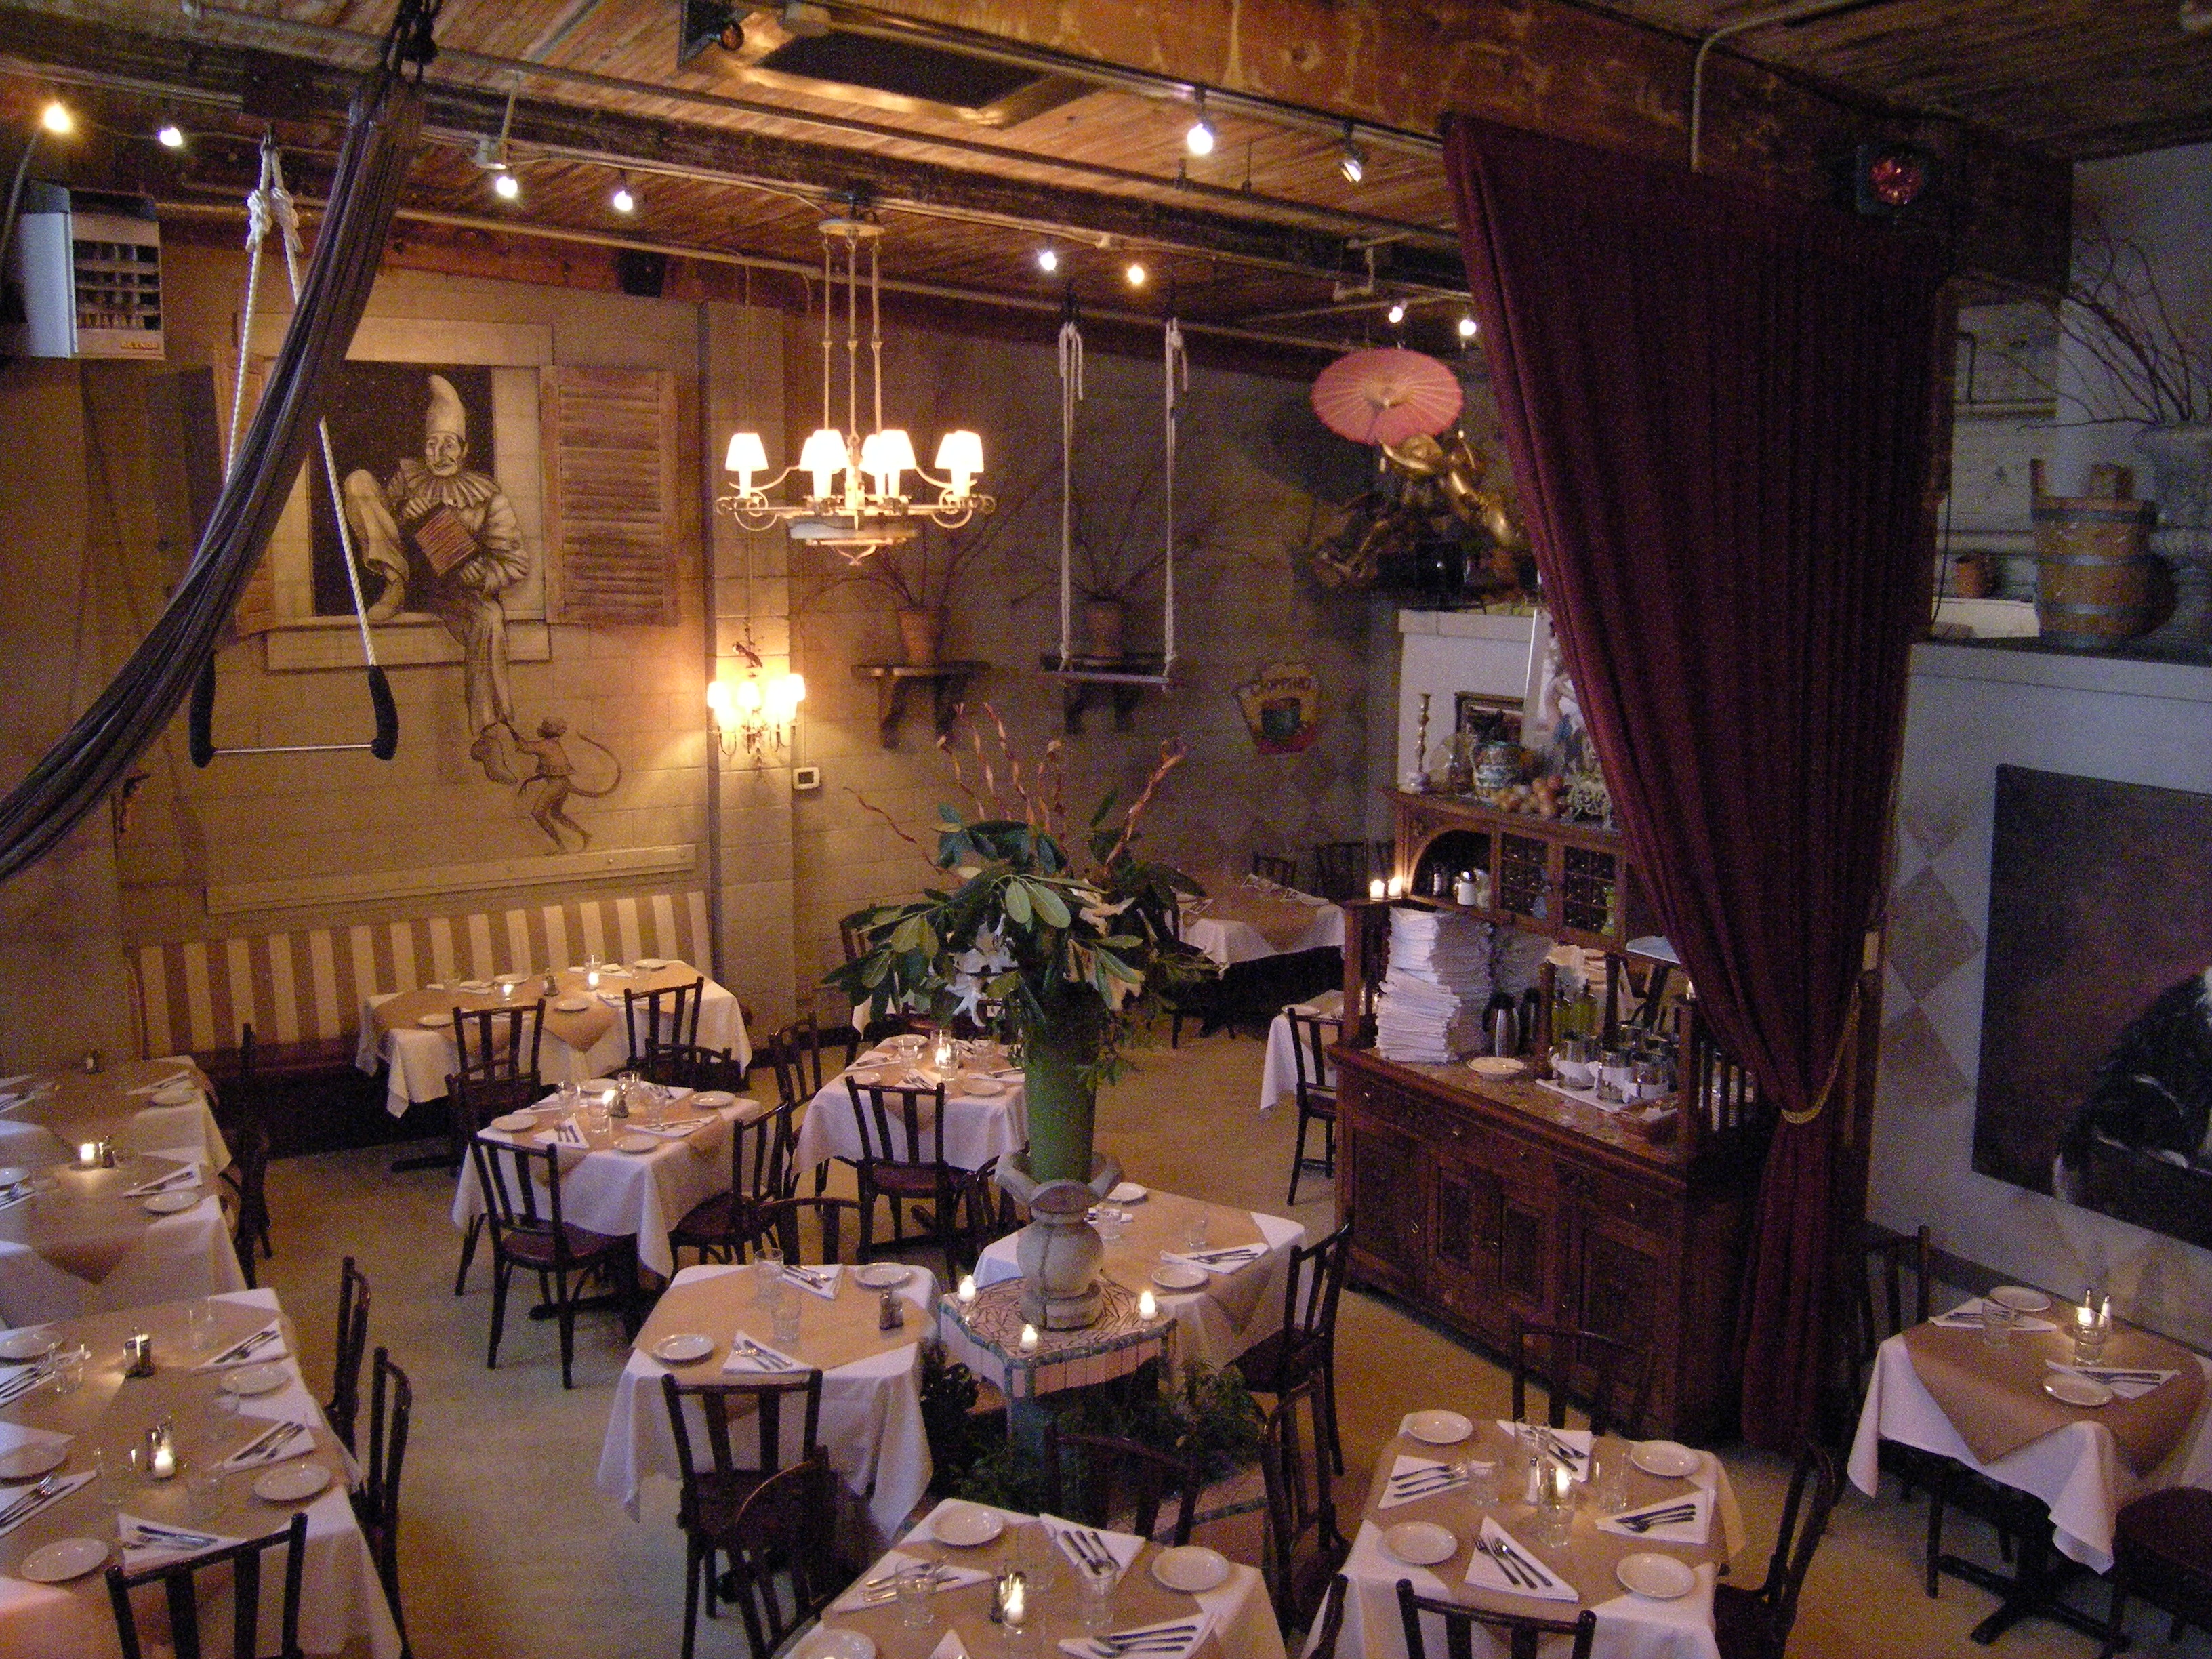 http://upload.wikimedia.org/wikipedia/commons/5/5f/Seattle_-_The_Pink_Door_interior.jpg